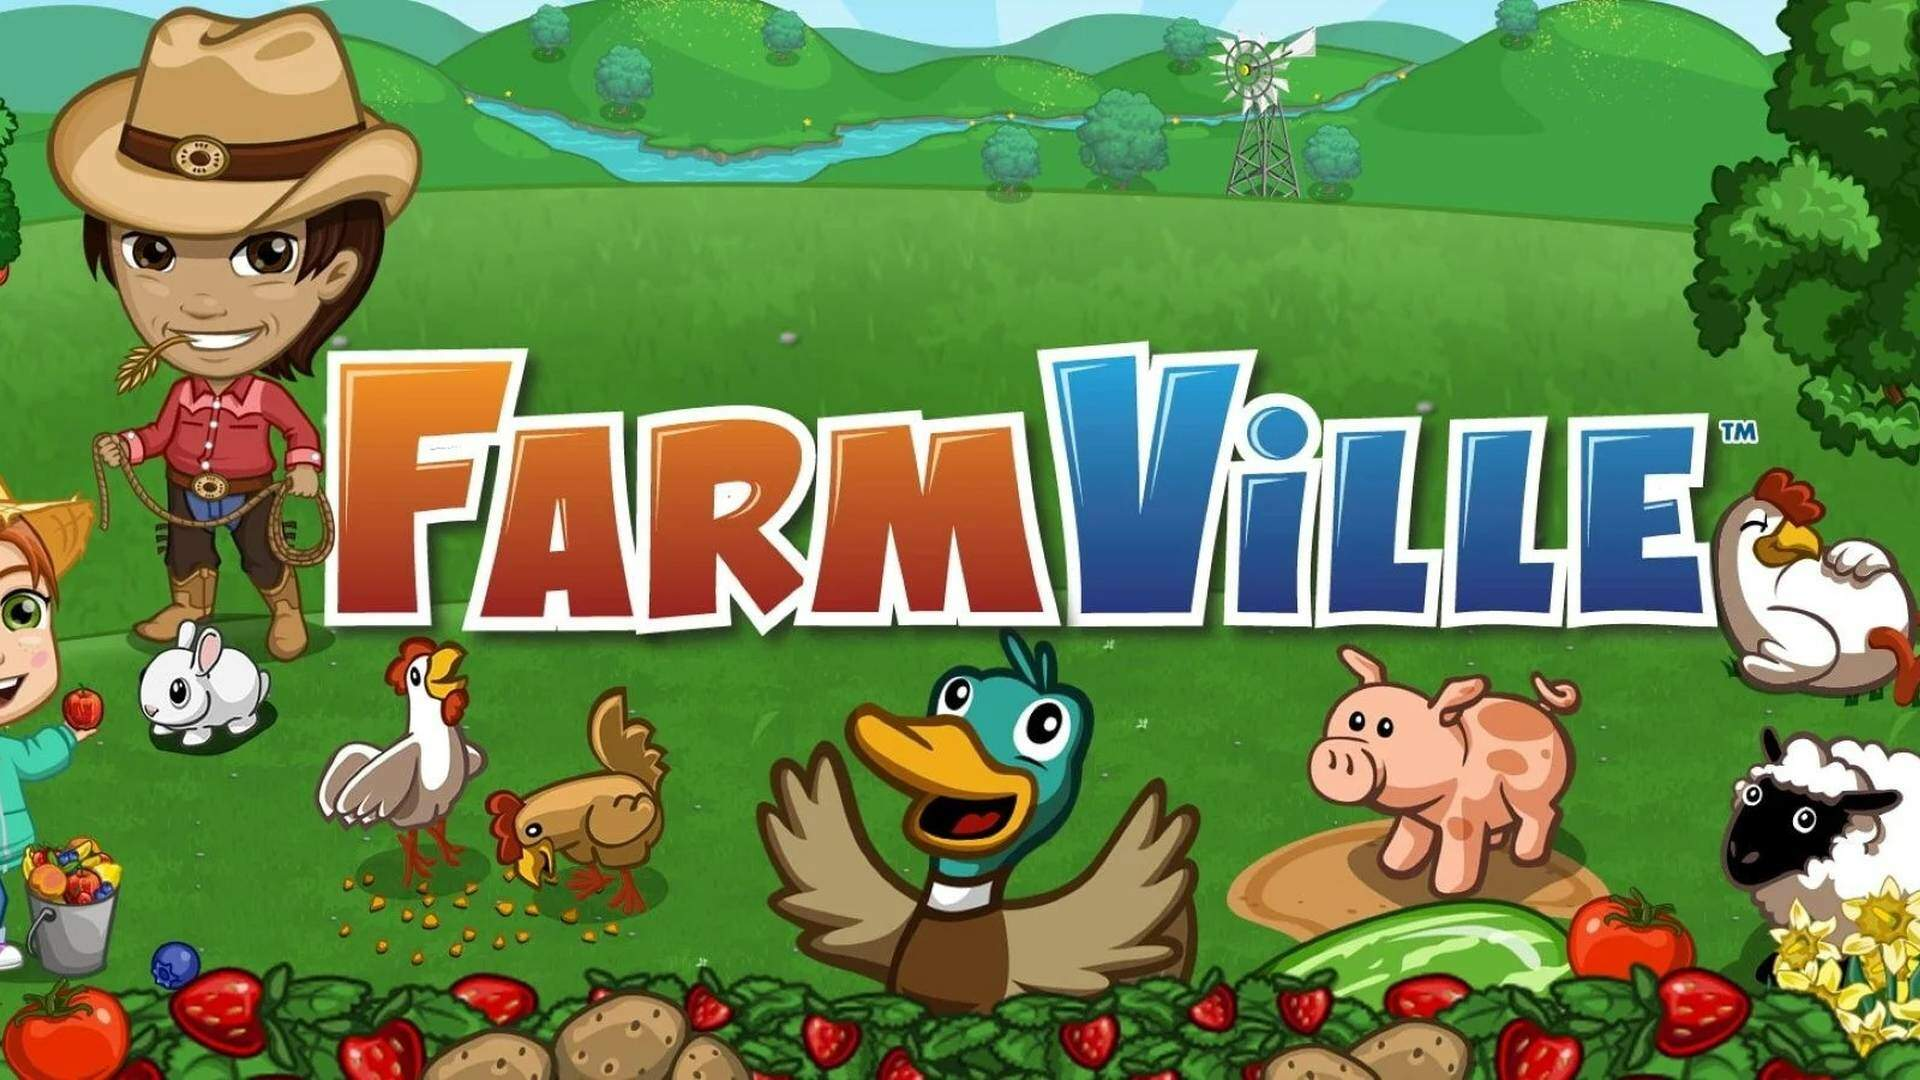 The Original FarmVille Is Being Put Out to Pasture at the End of the Year